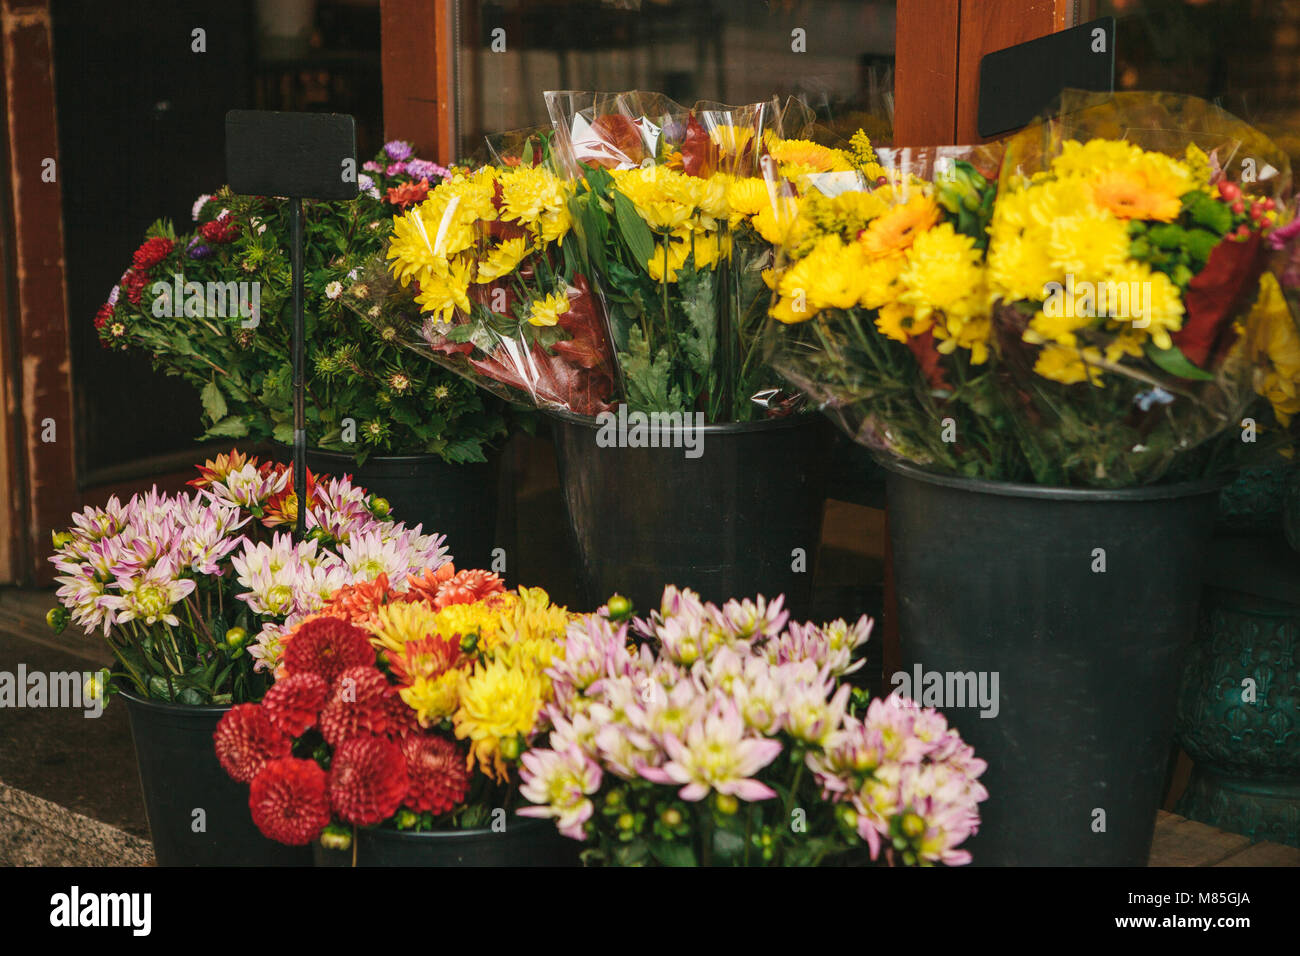 Street shop of flowers bouquets of peonies and chrysanthemums street shop of flowers bouquets of peonies and chrysanthemums stand in black buckets izmirmasajfo